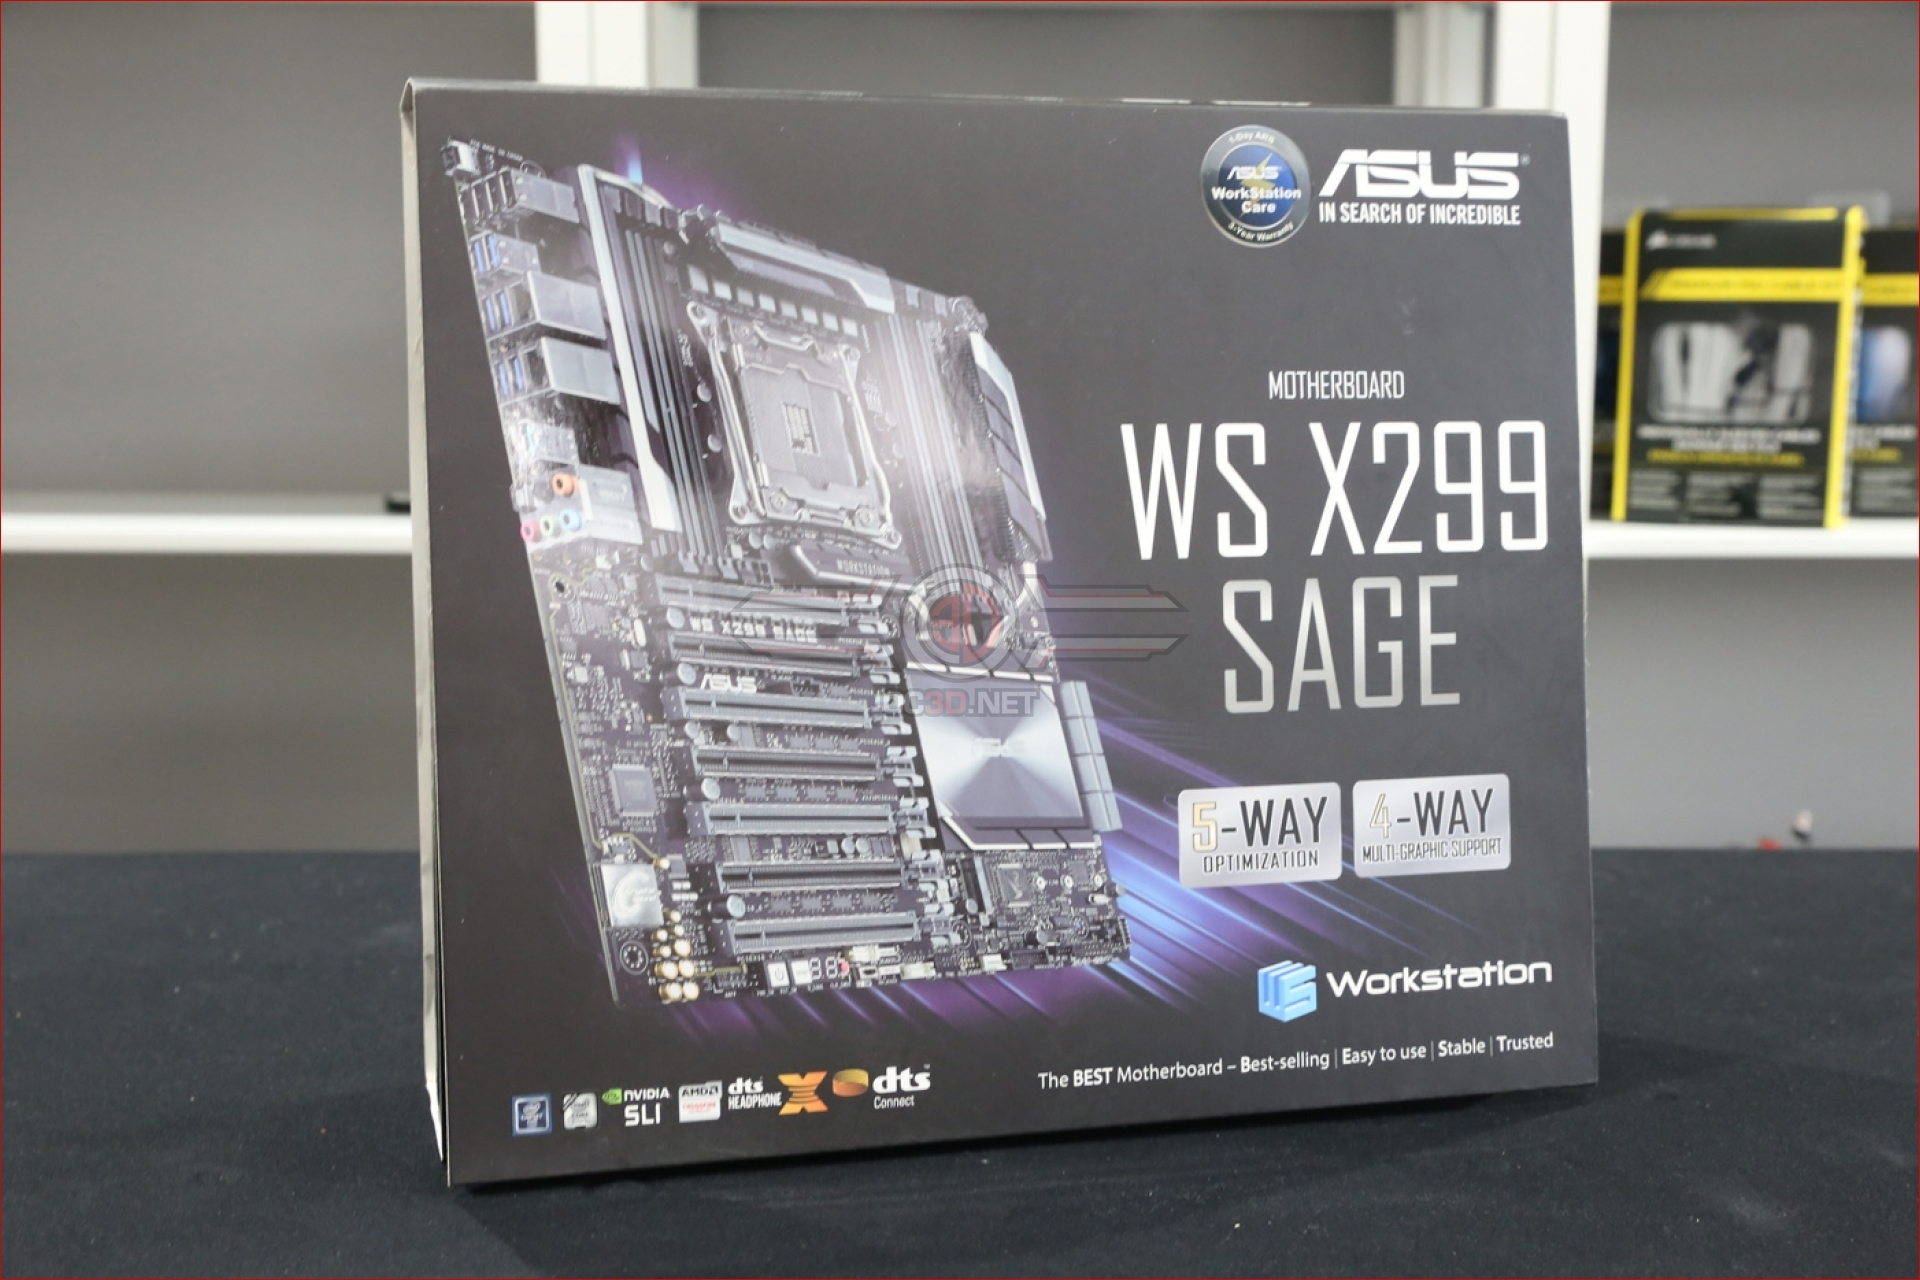 ASUS WS X299 Sage Work Station Motherboard Review | Up Close